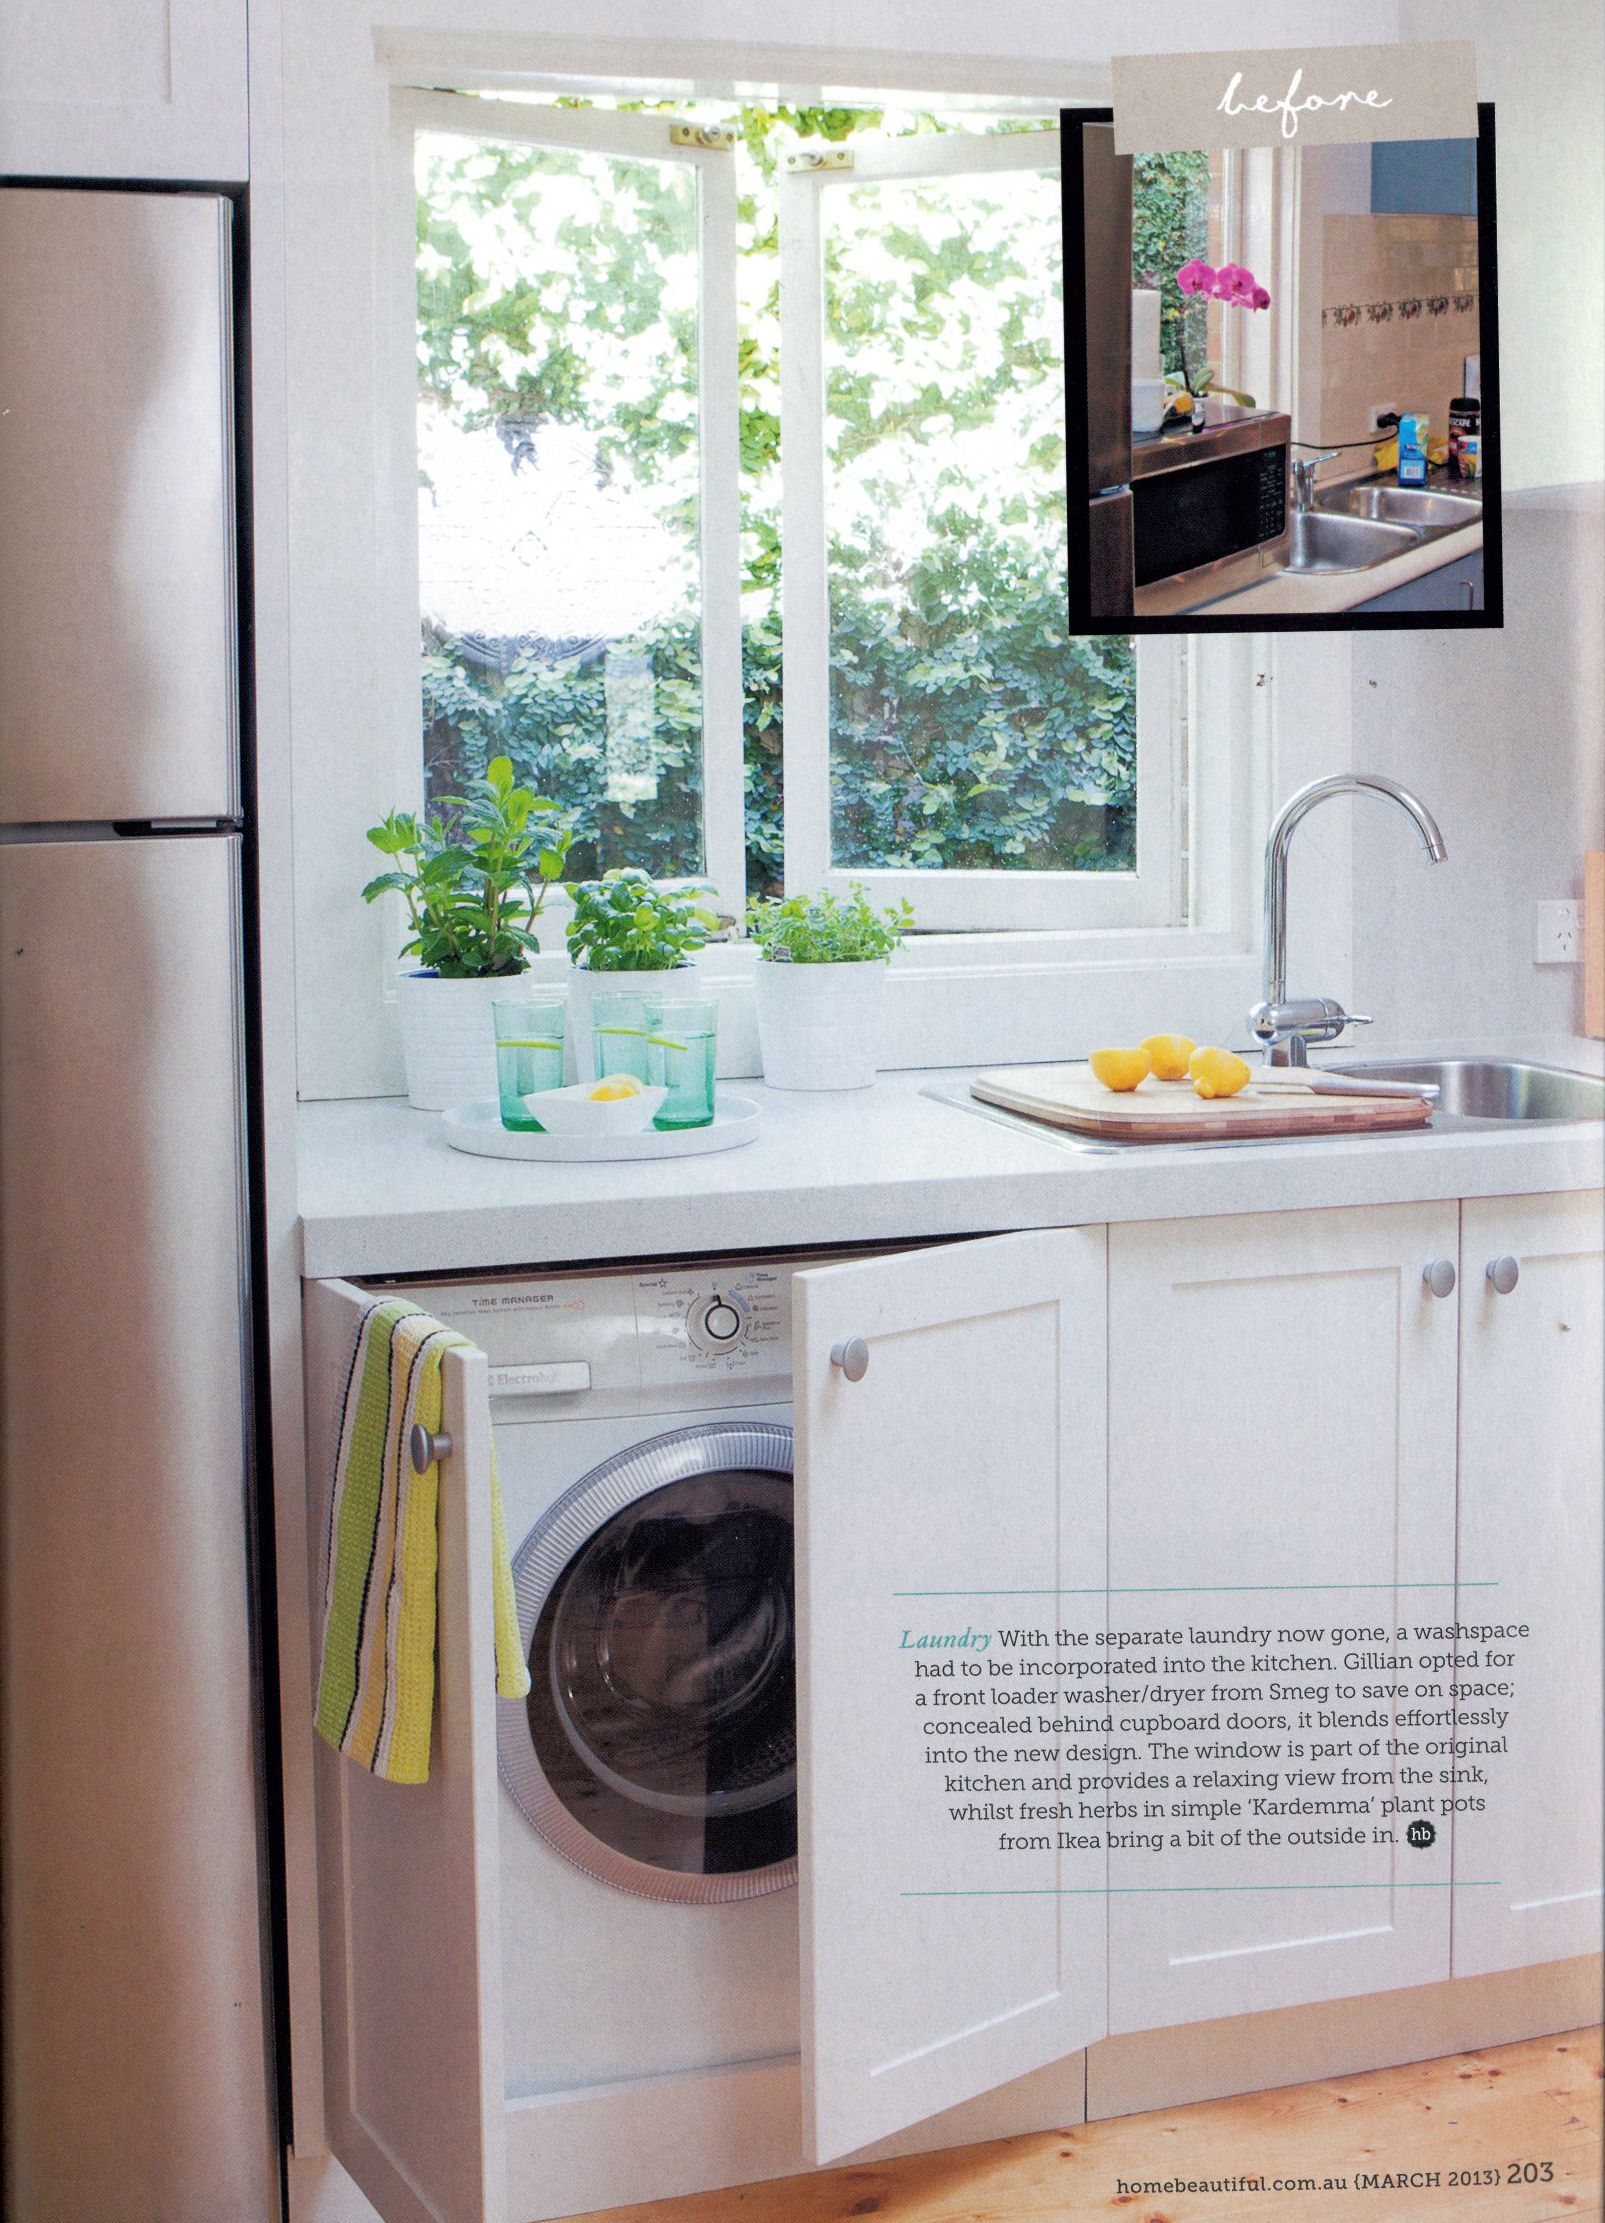 cupboard doors + hidden washing machine | ideas for the house in